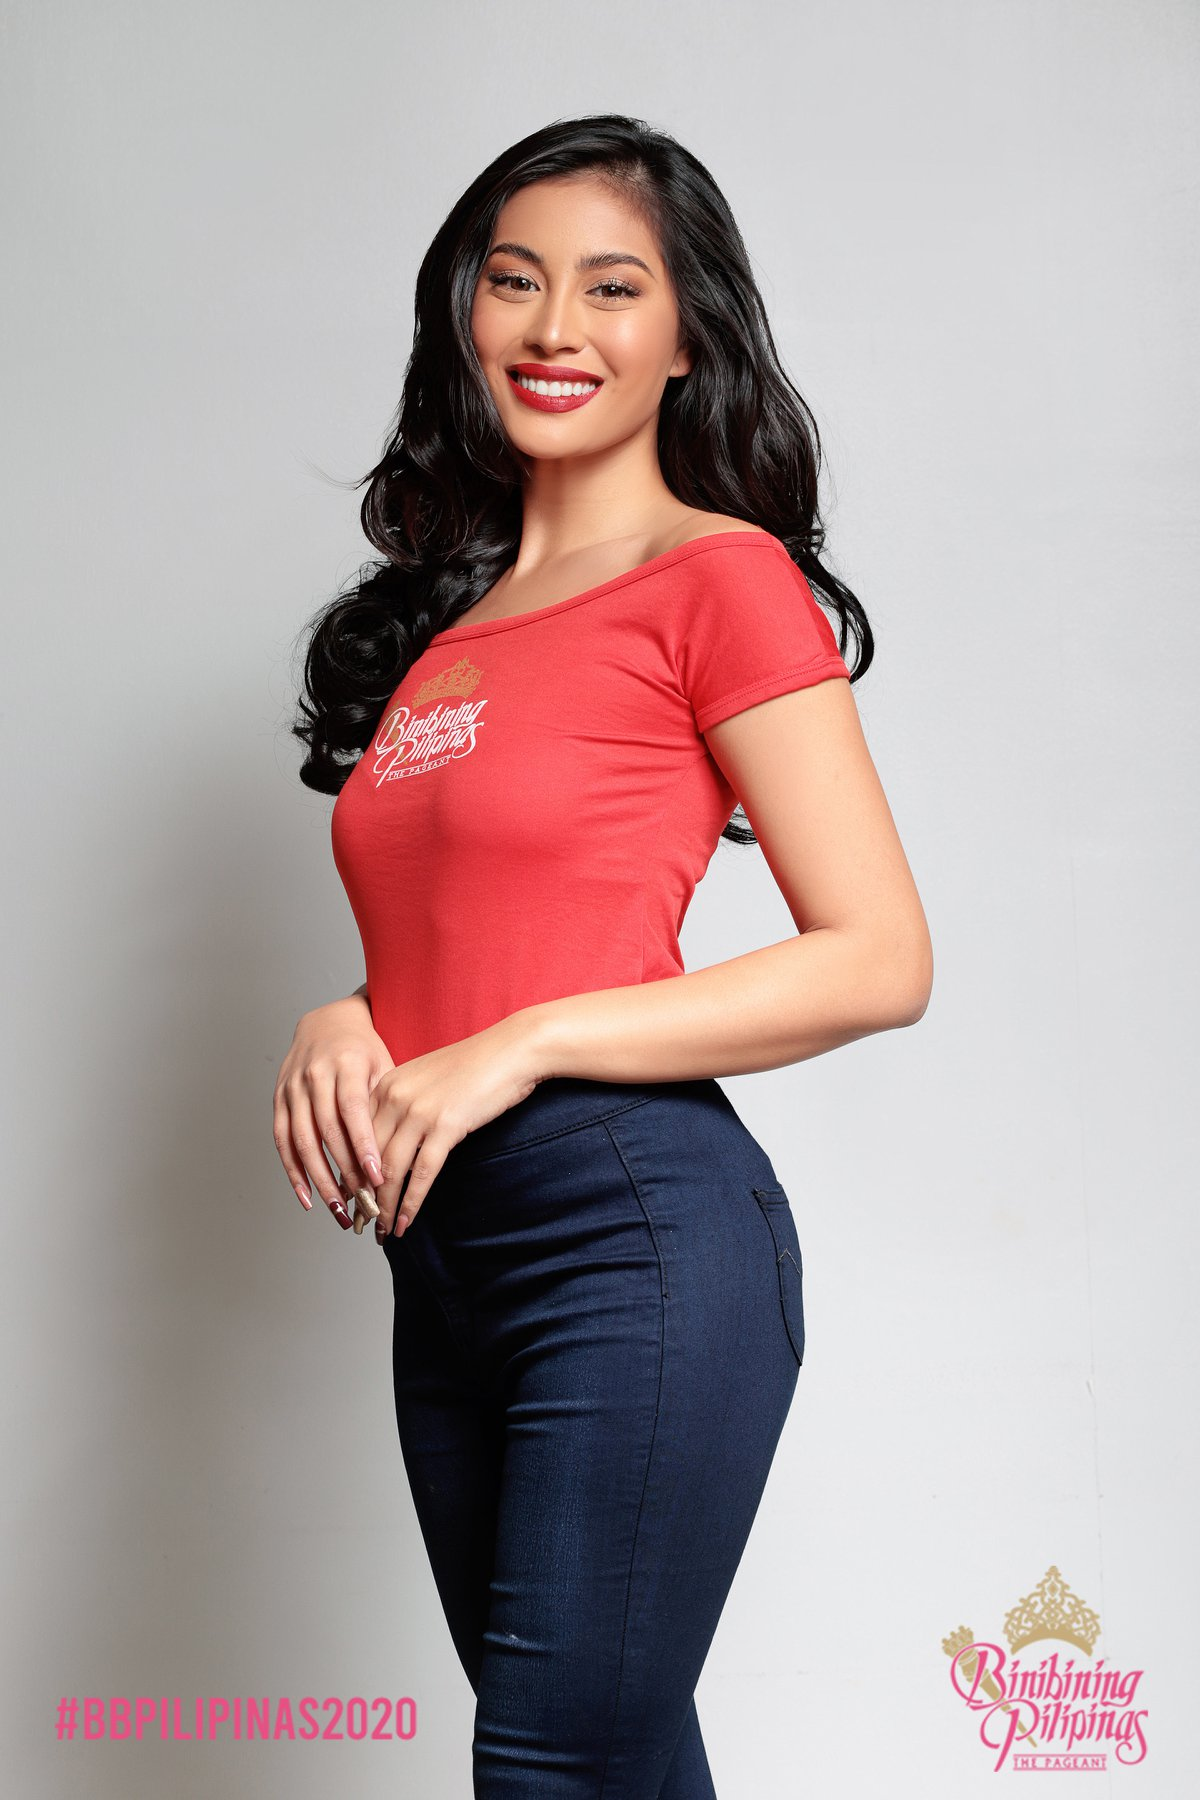 Binibining Pilipinas 2020 - OFFICIAL PORTRAIT  - Page 2 4110